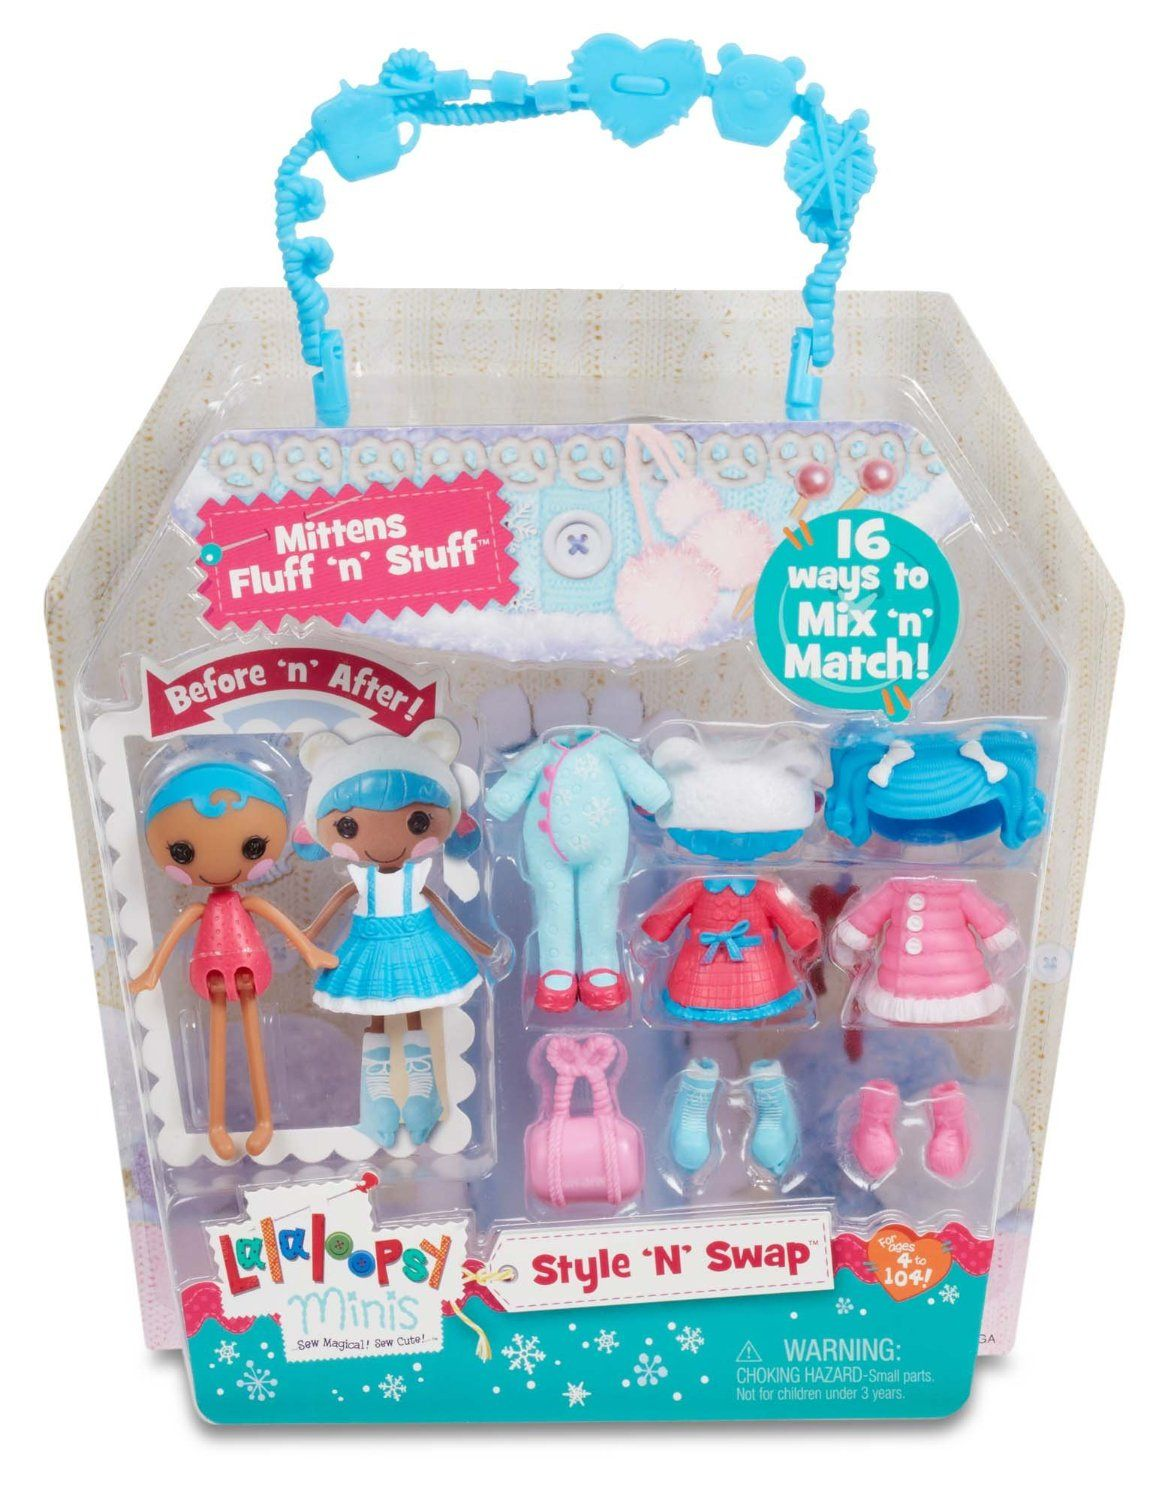 Amazon.com: Lalaloopsy Minis Style \'N\' Swap Doll- Mittens Fluff \'N ...